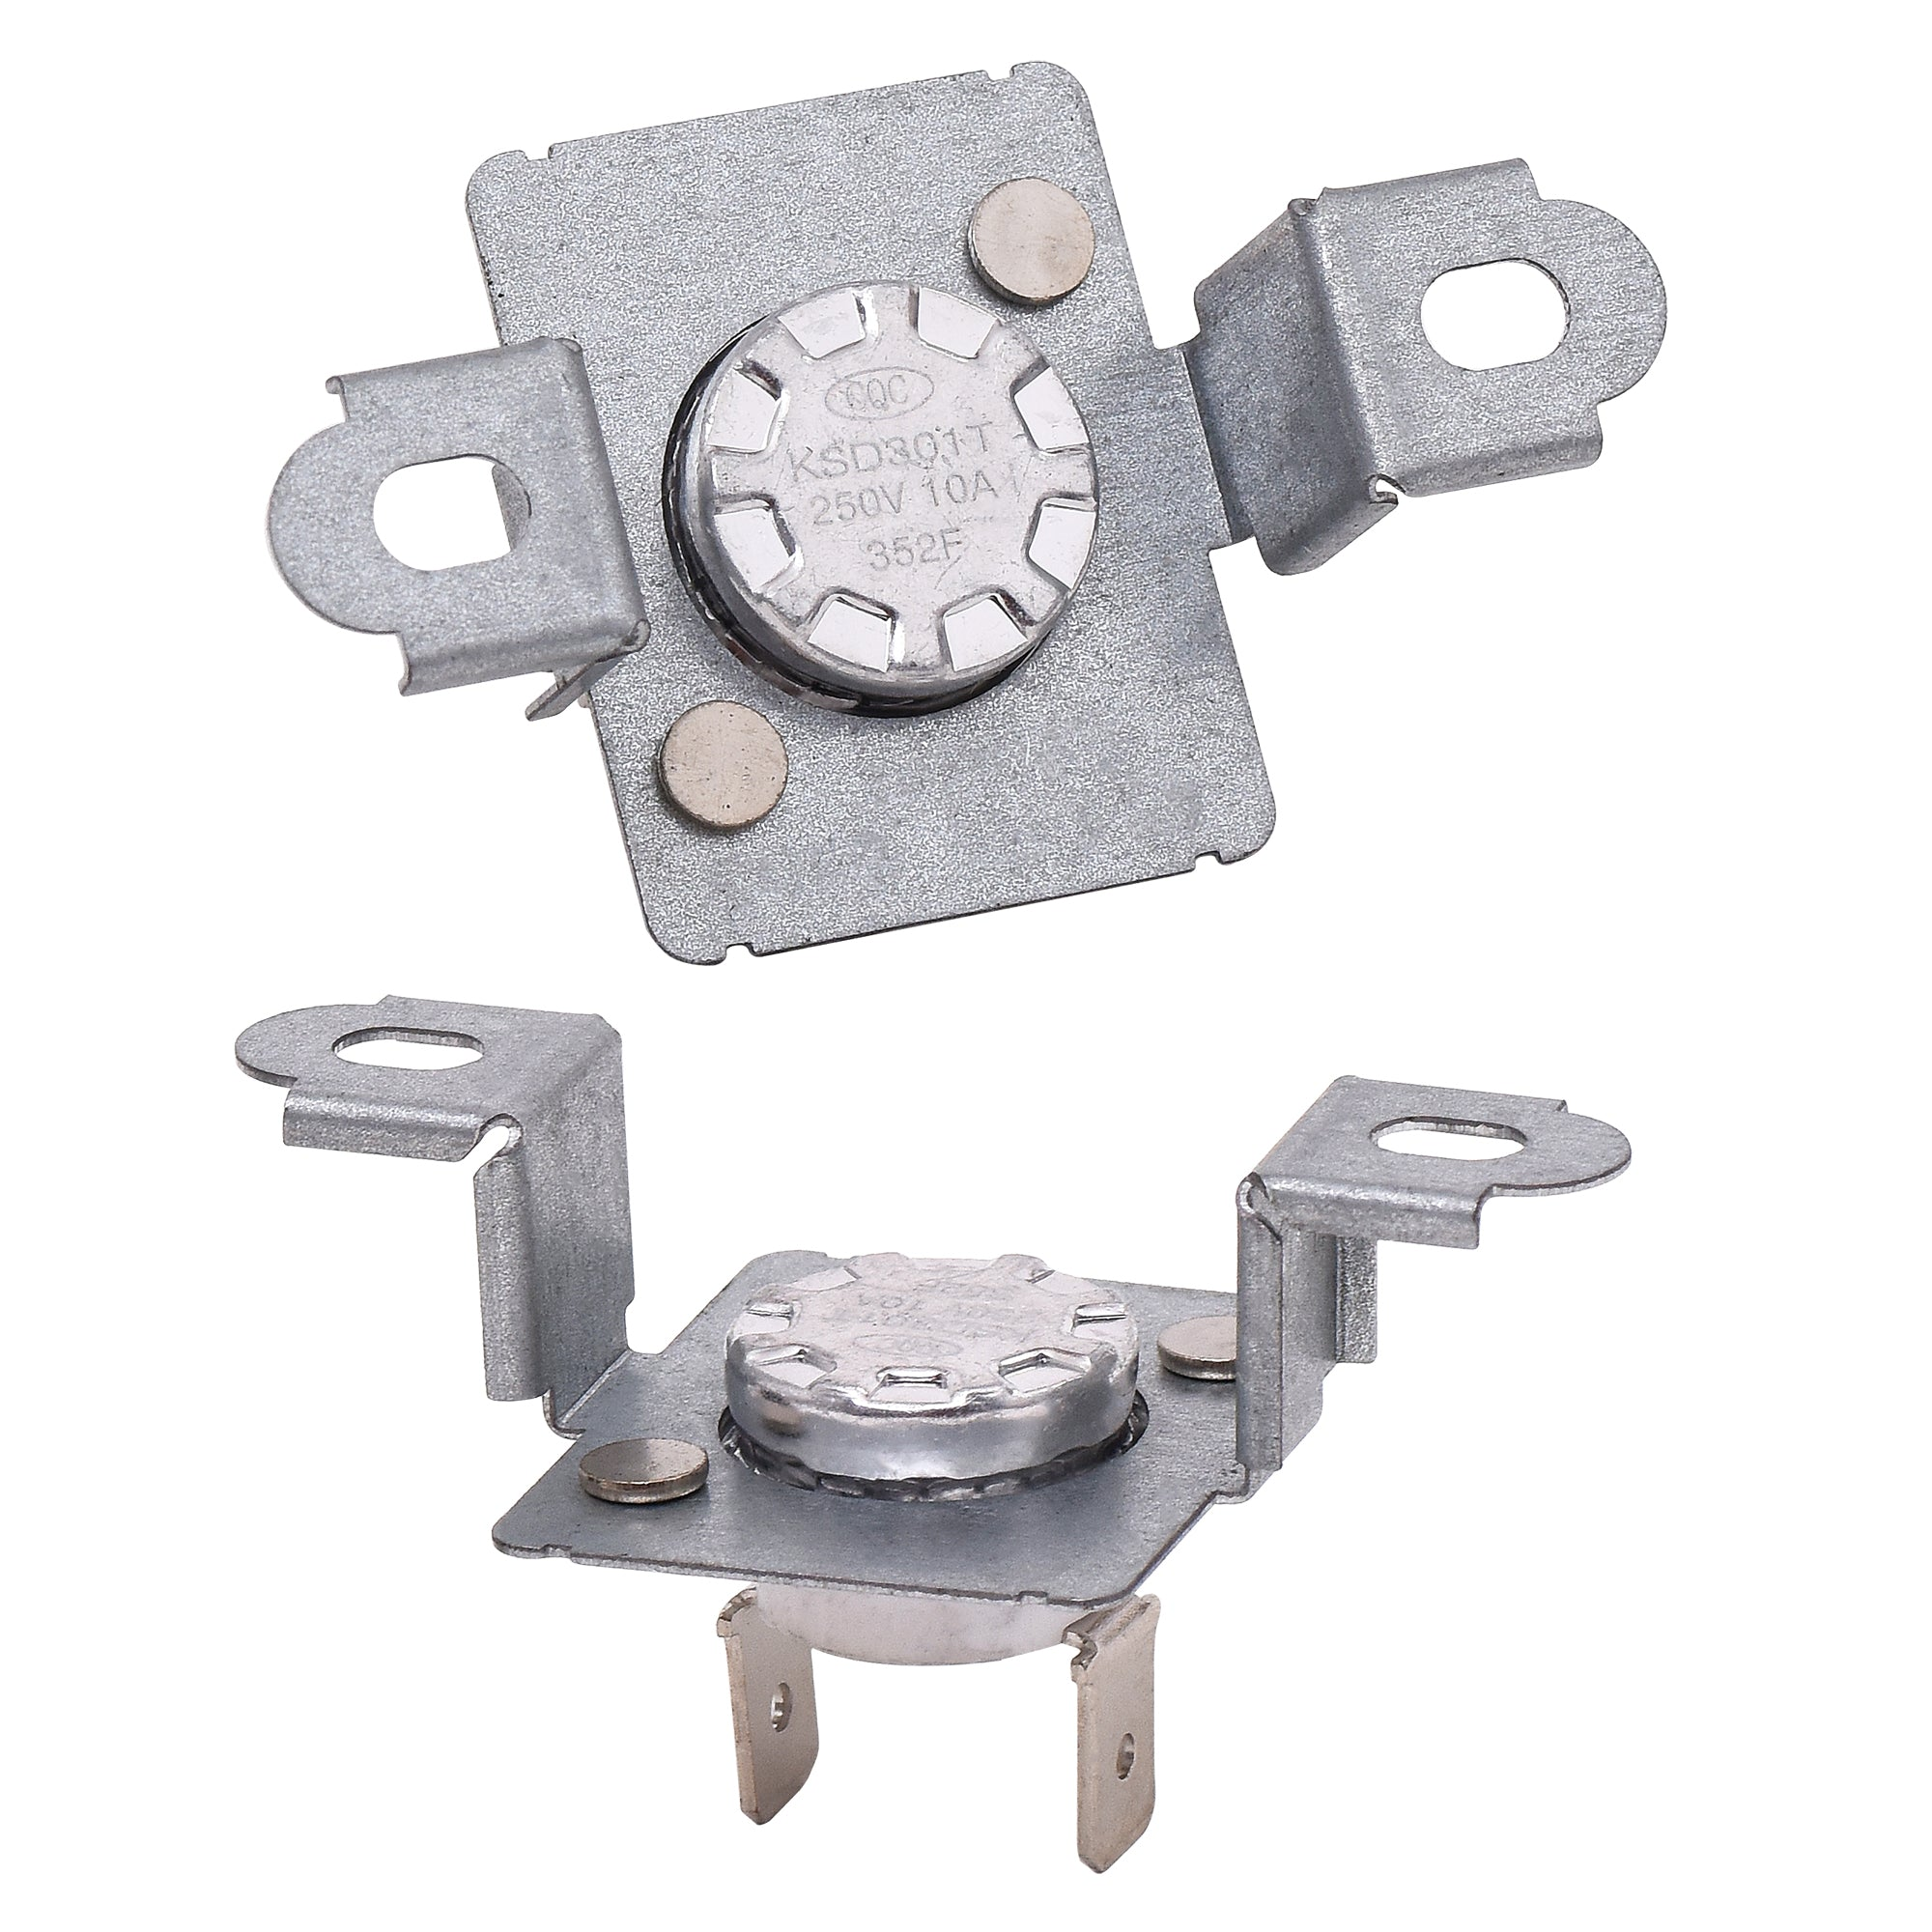 Bluestars Quality Replacement Parts Whirlpool Dryer Diagram Gas Thermal Fuse Kenmore 279973 Cut Off Kit Part By Blue Stars Exact Fit For Replaces 3391913 8318314